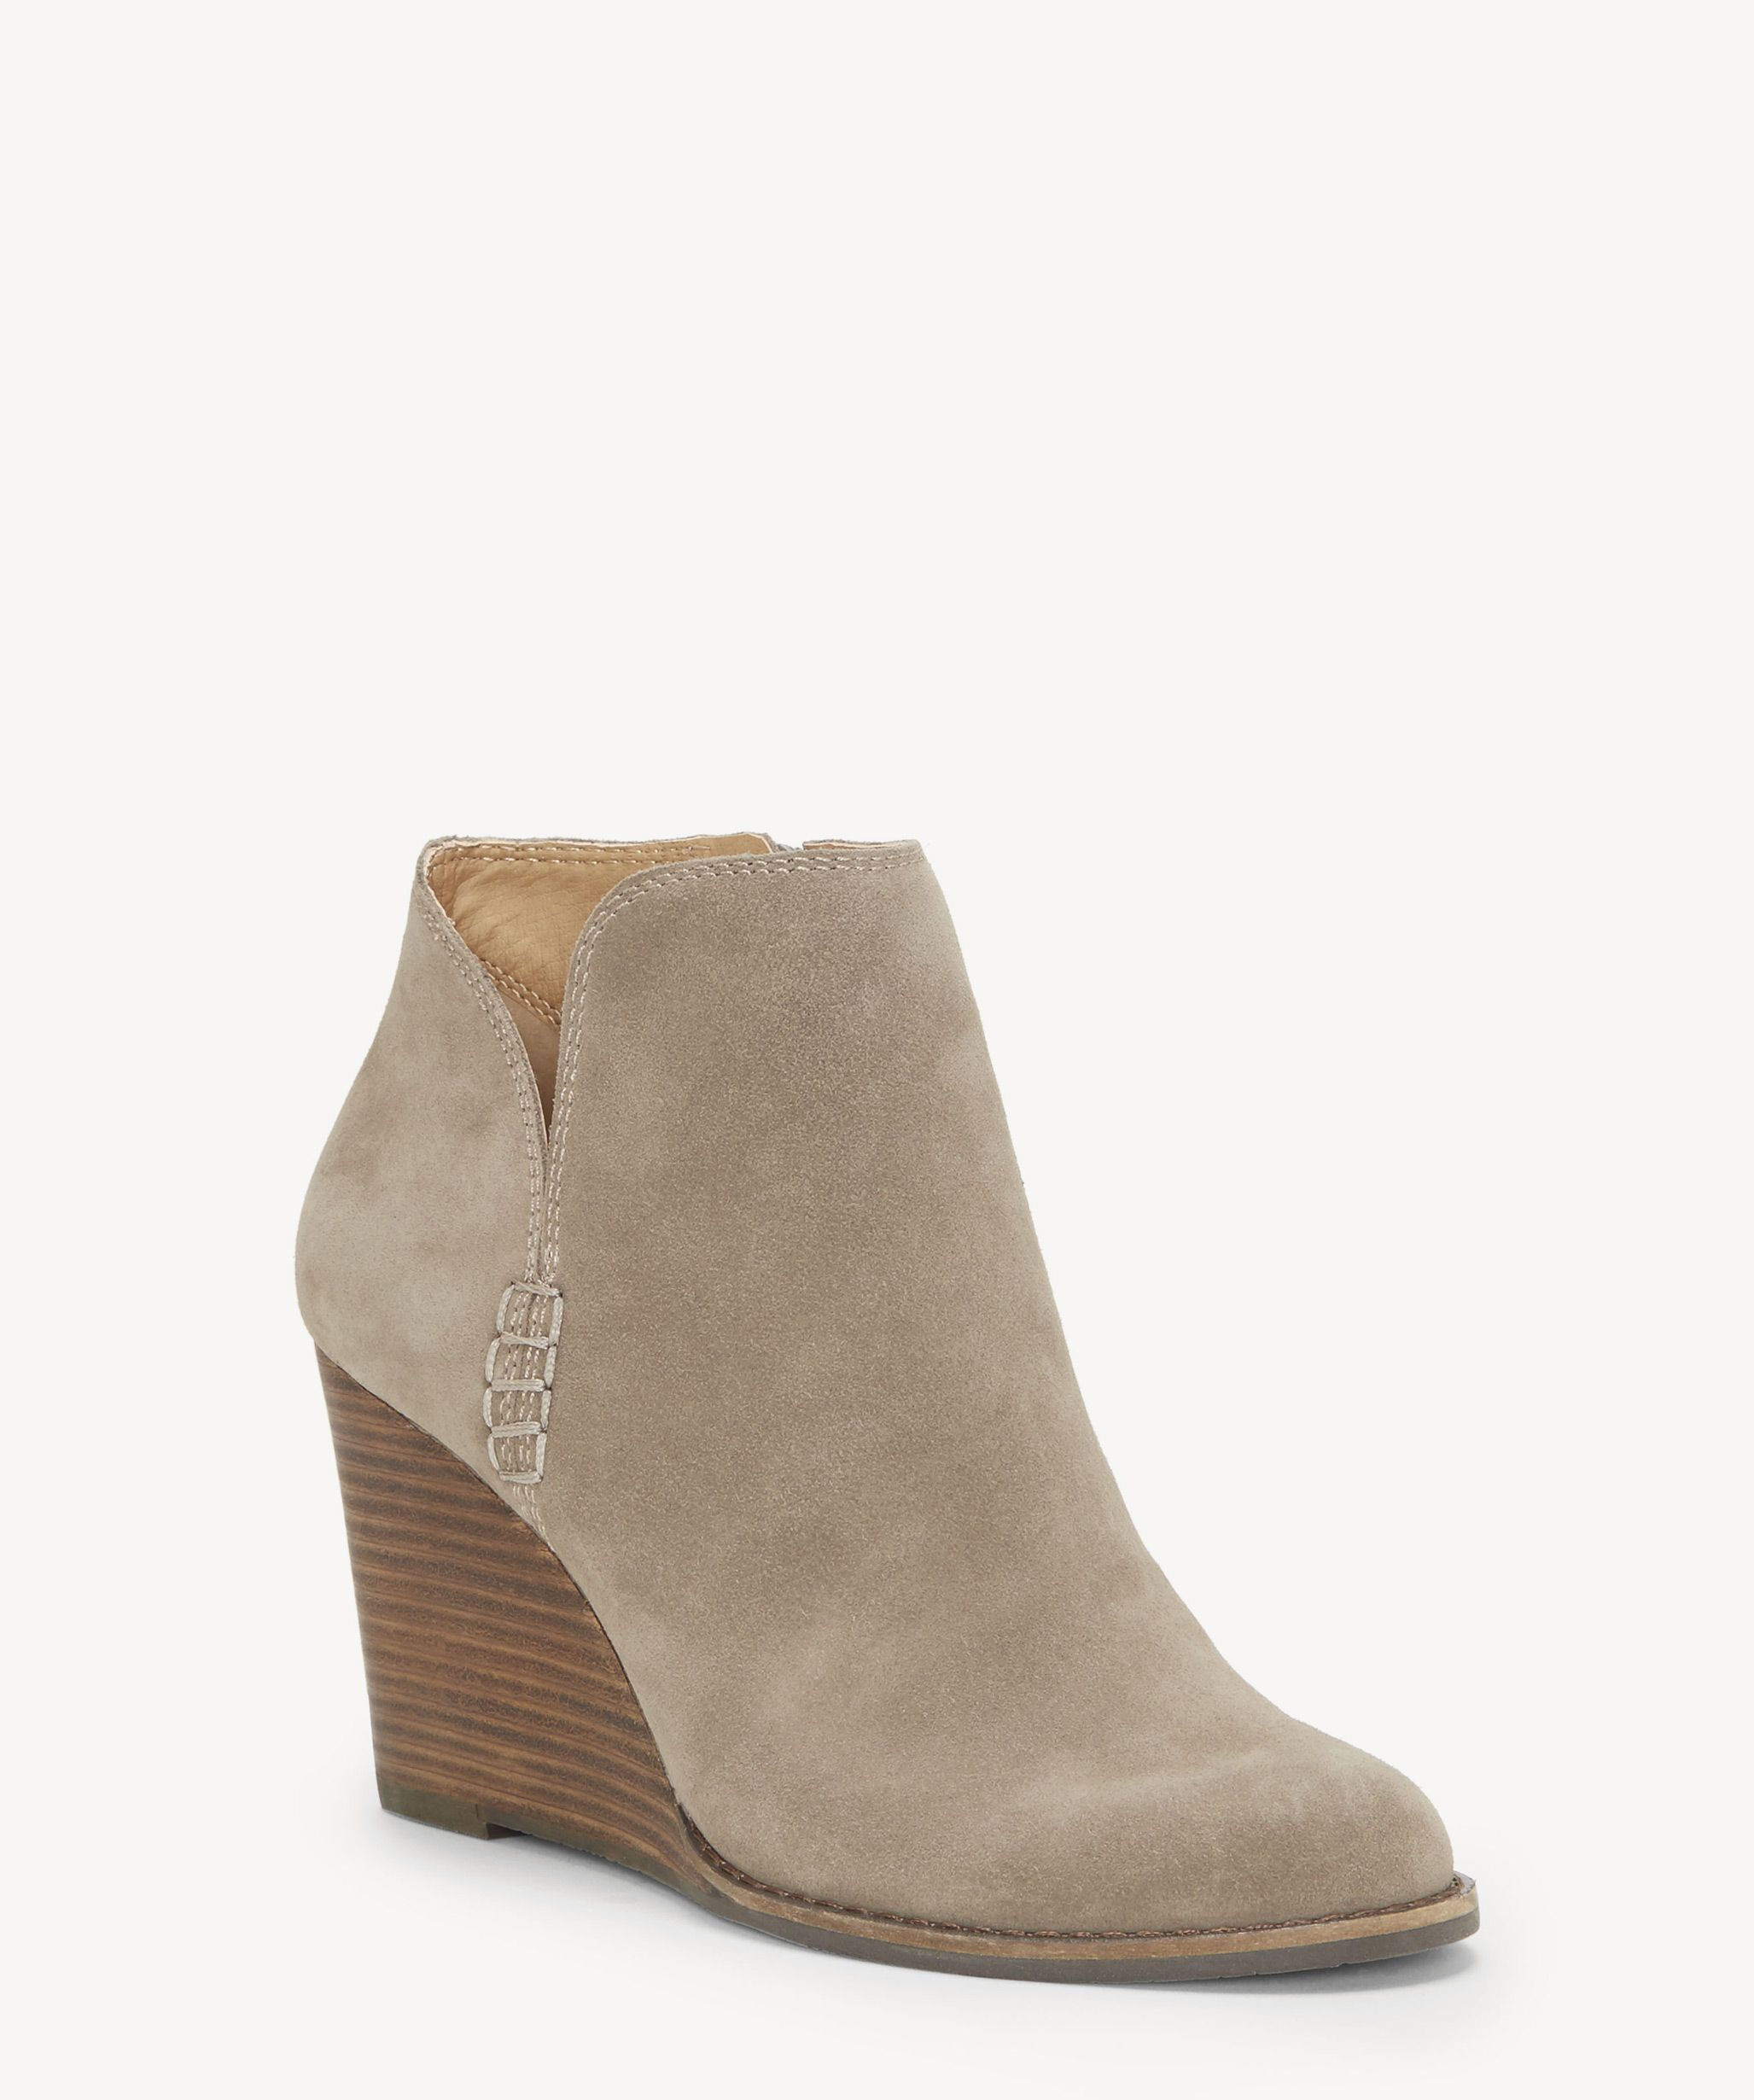 Sole Society: Lucky Brand Yimmie Wedge Bootie - $129